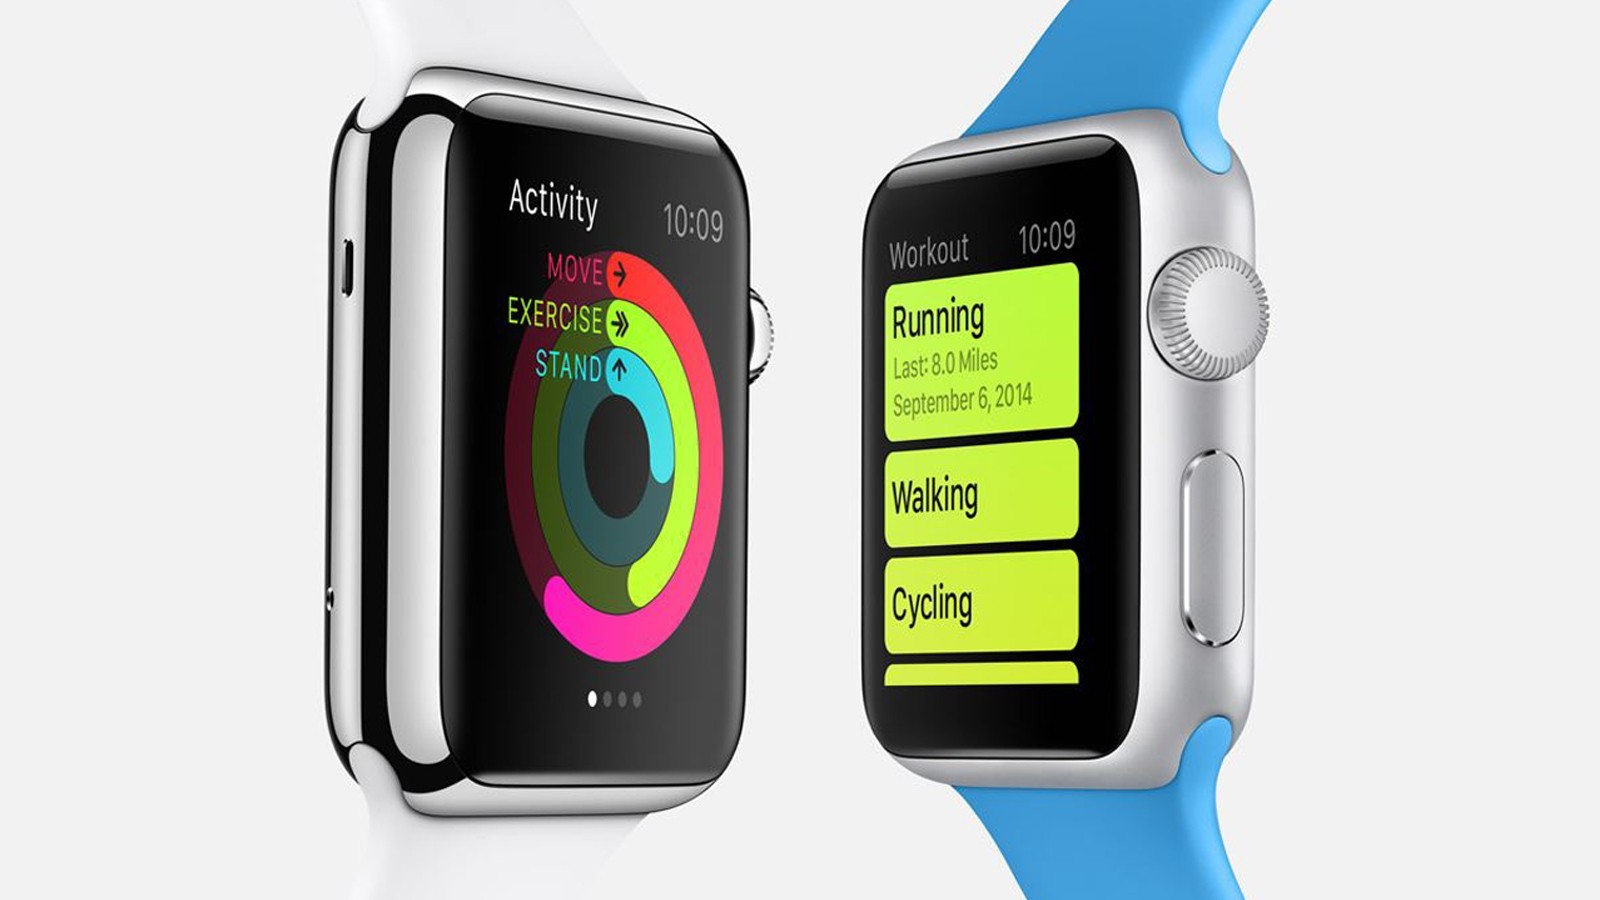 The Apple Watch Sport will likely appeal to many active iPhone users